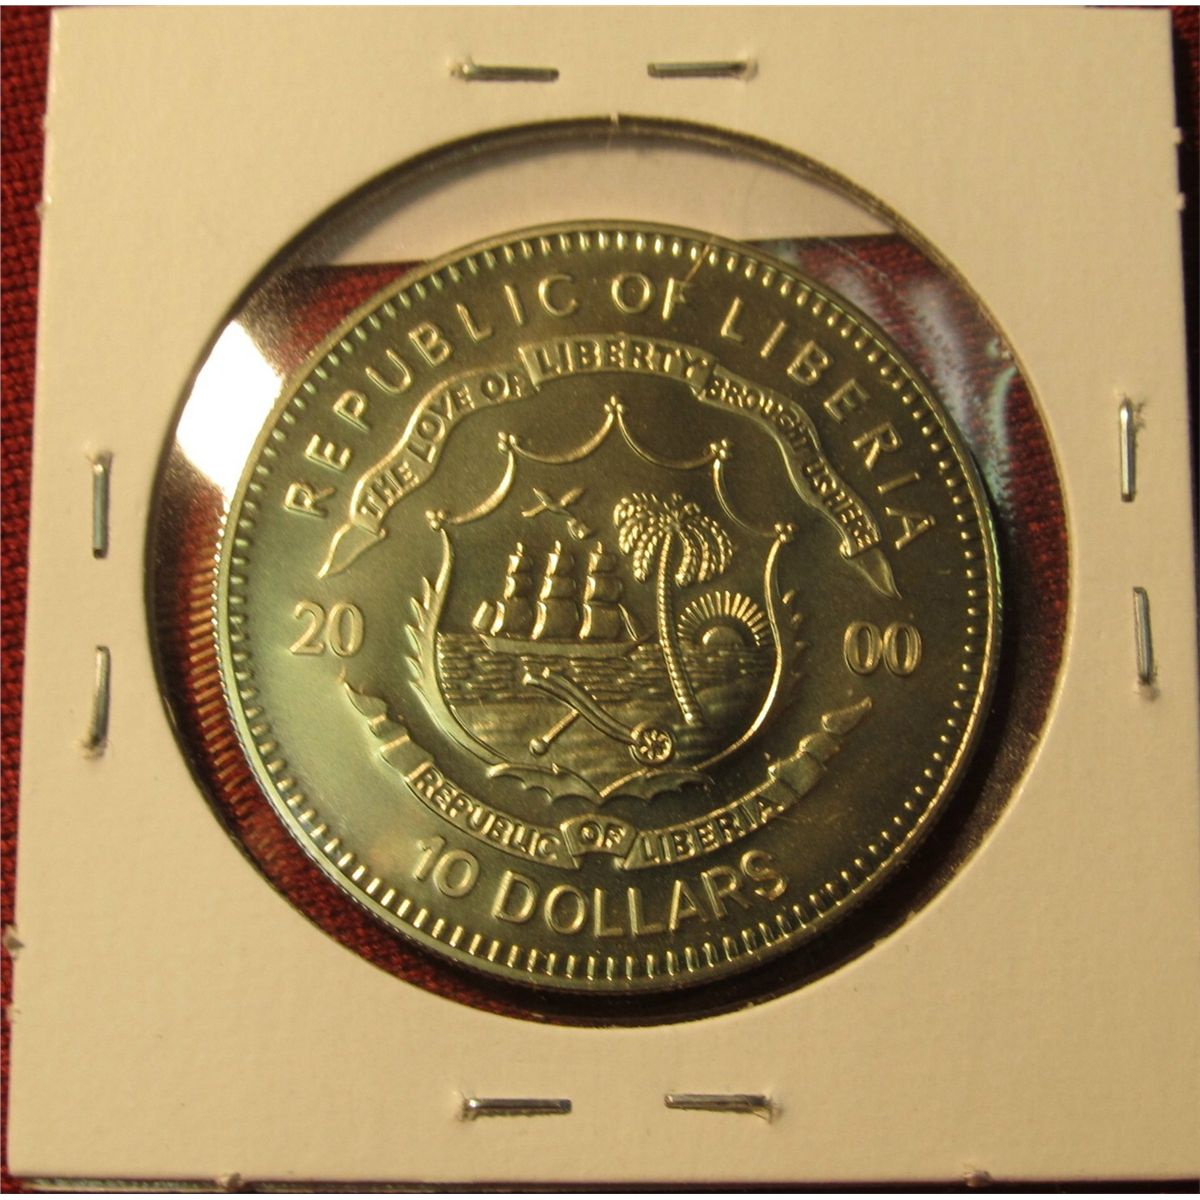 2000 Republic Of Liberia 10 Dollars Commemorative Coin Featuring The Statue